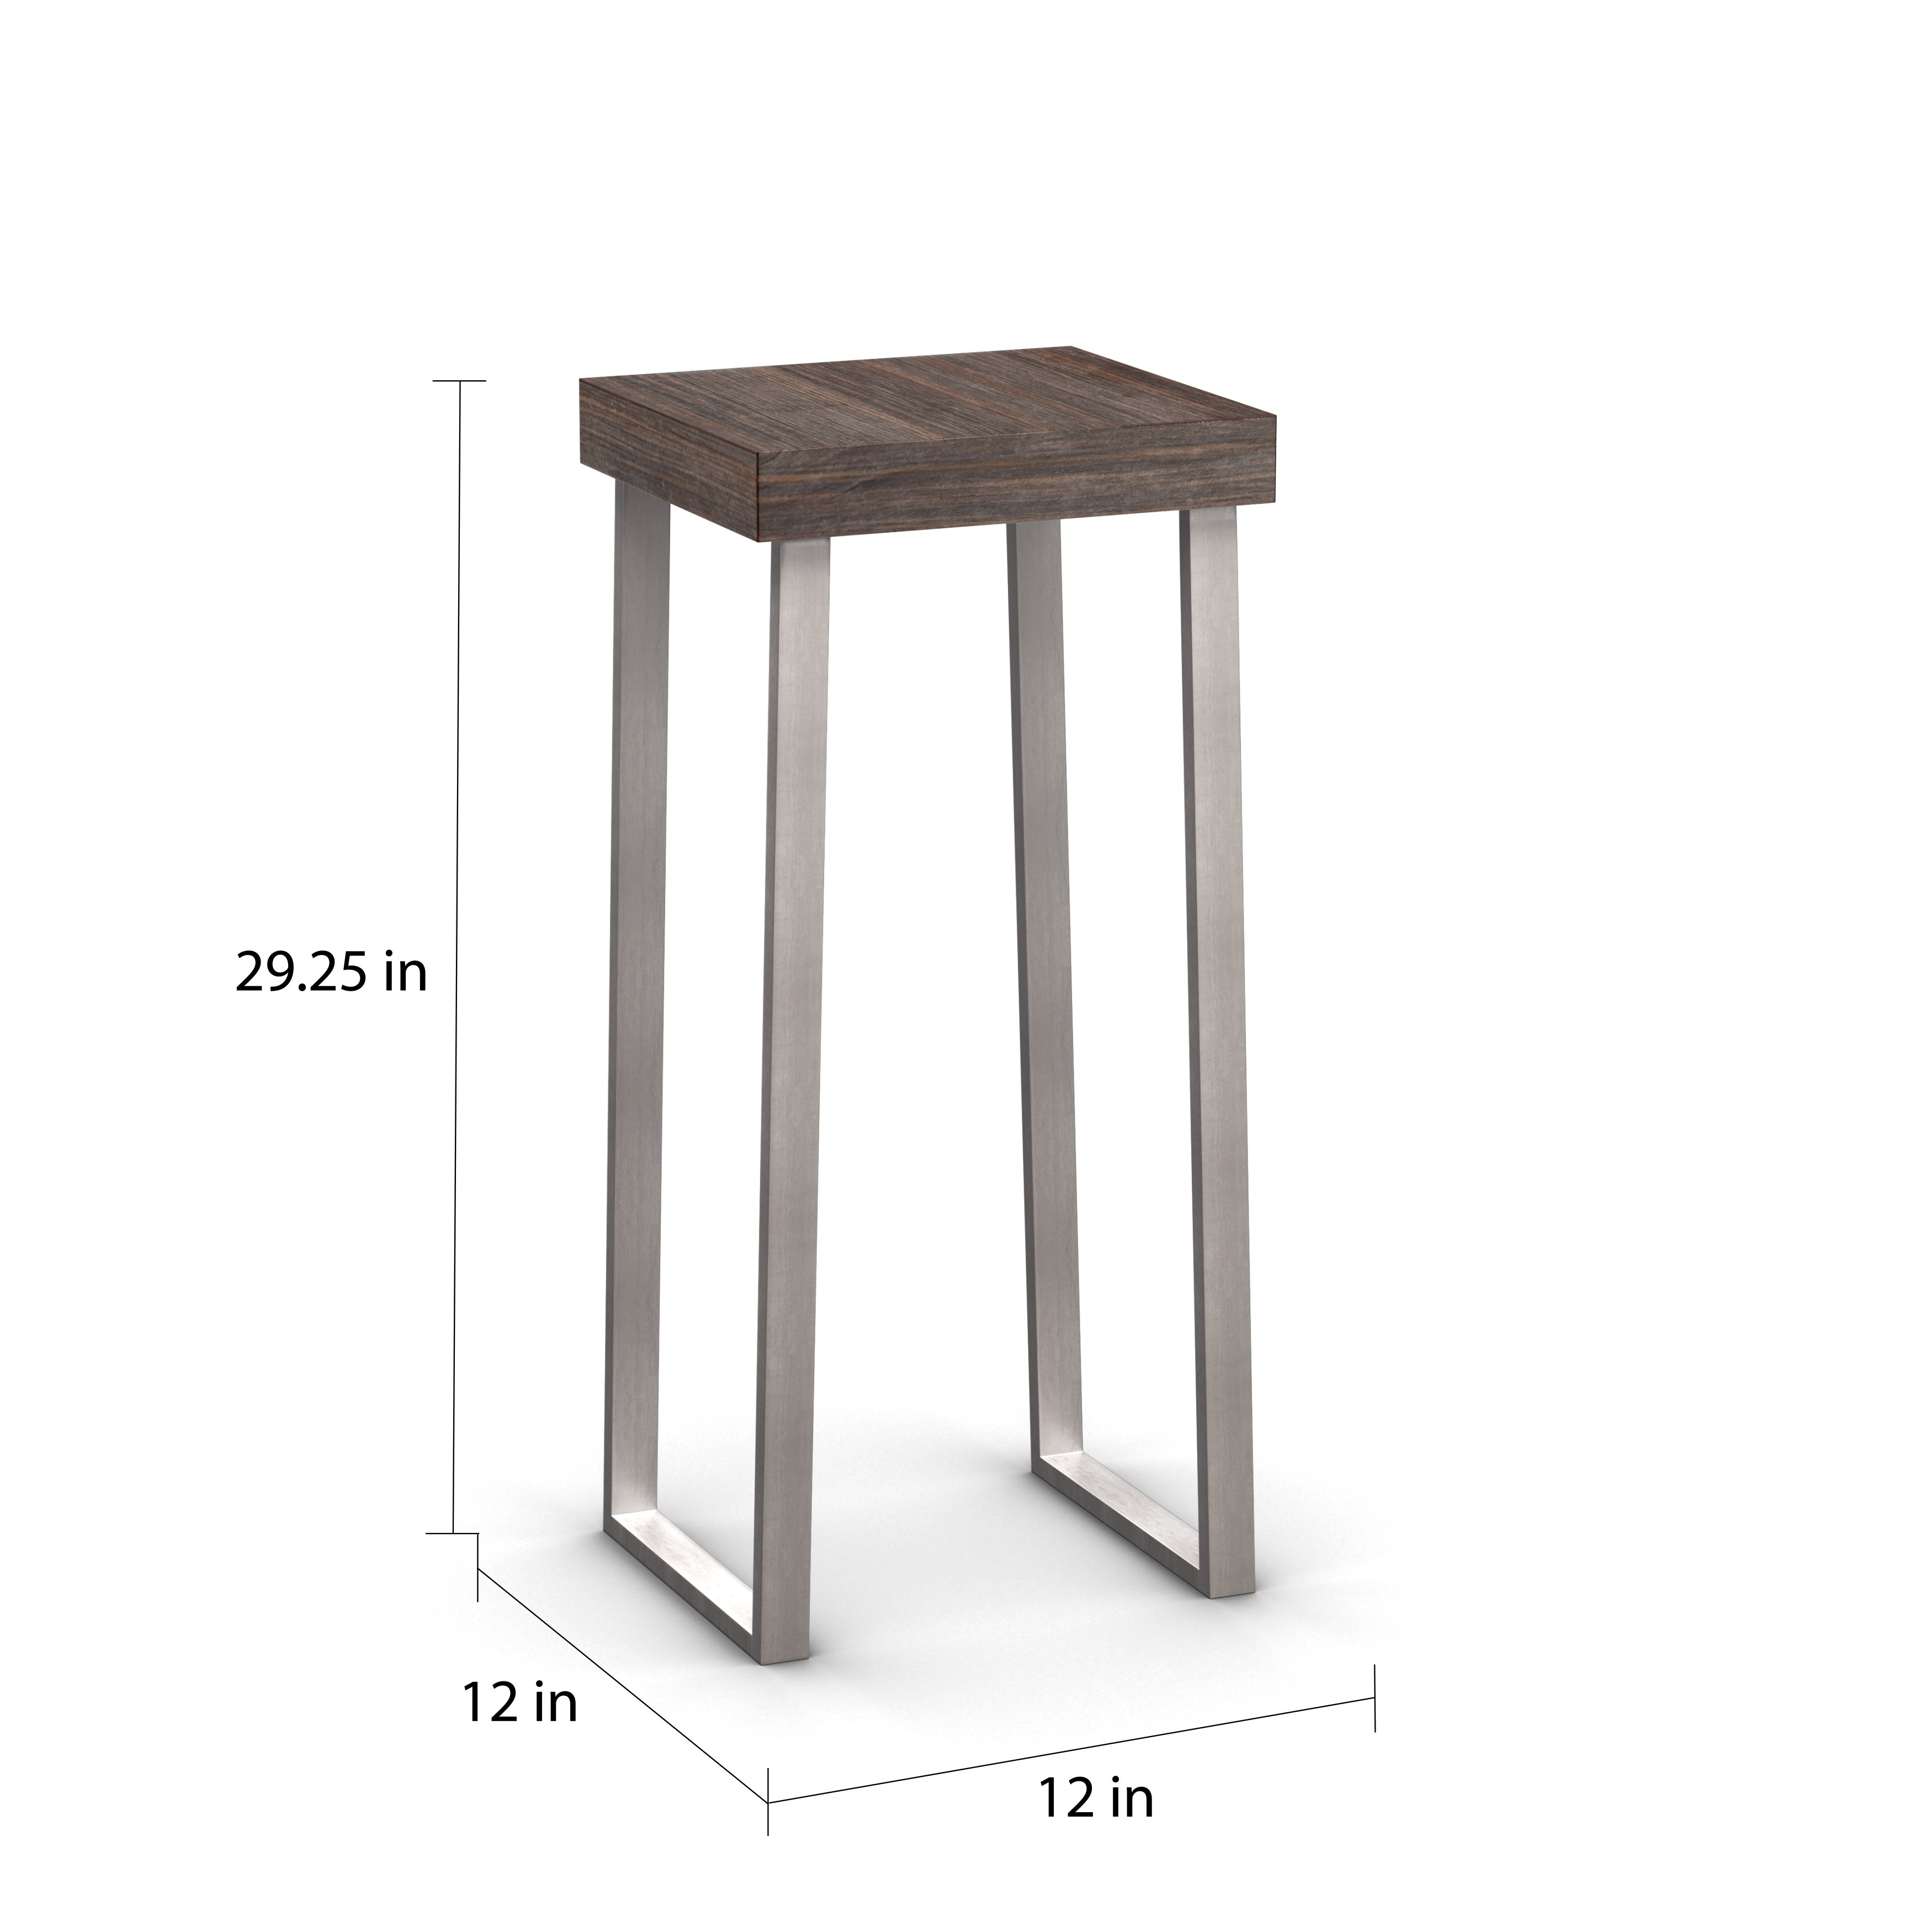 carbon loft murdock pedestal accent table free tall round shipping today cube side hairpin leg stool trestle desk fruity alcoholic drinks grey placemats and napkins rattan coffee